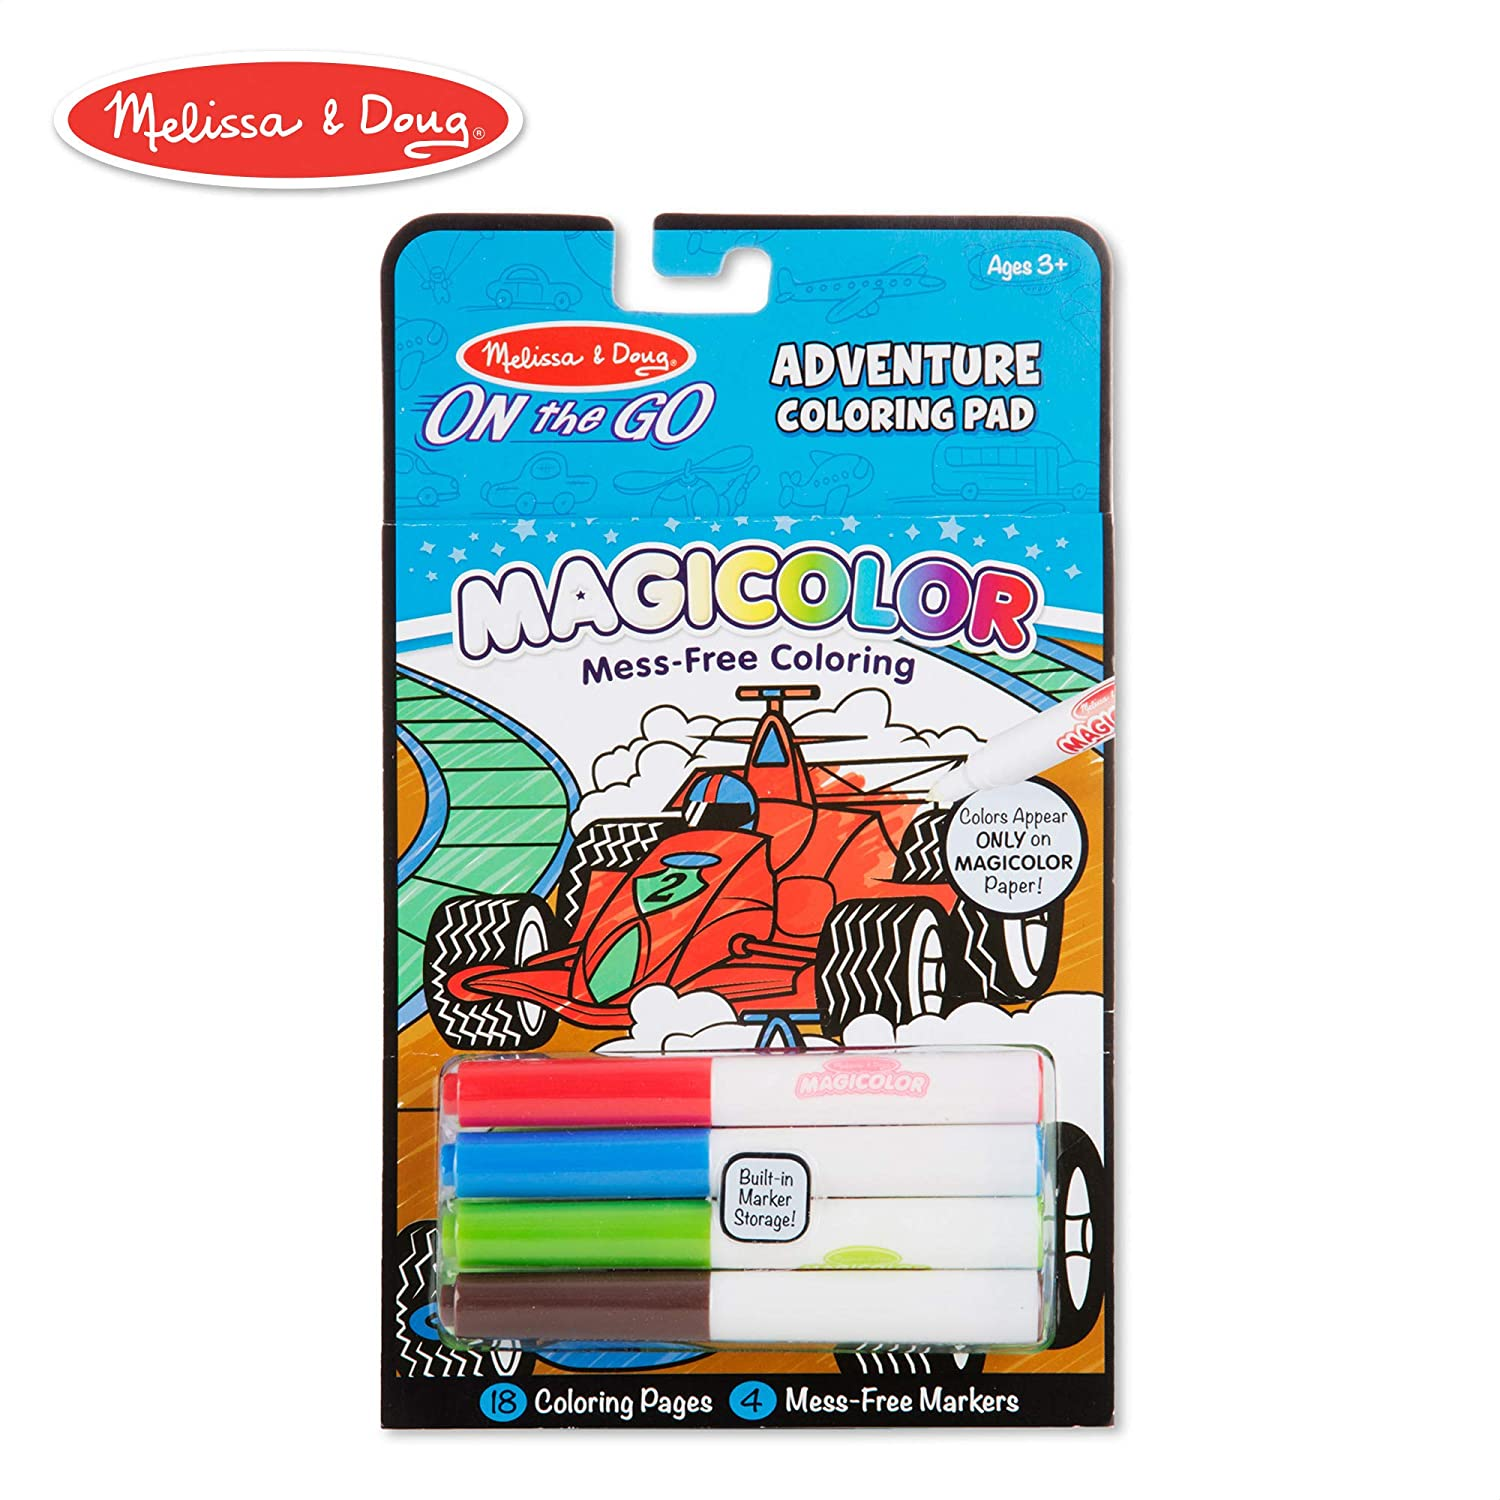 Melissa doug on the go magicolor coloring pad adventure 18 coloring pages and 4 markers